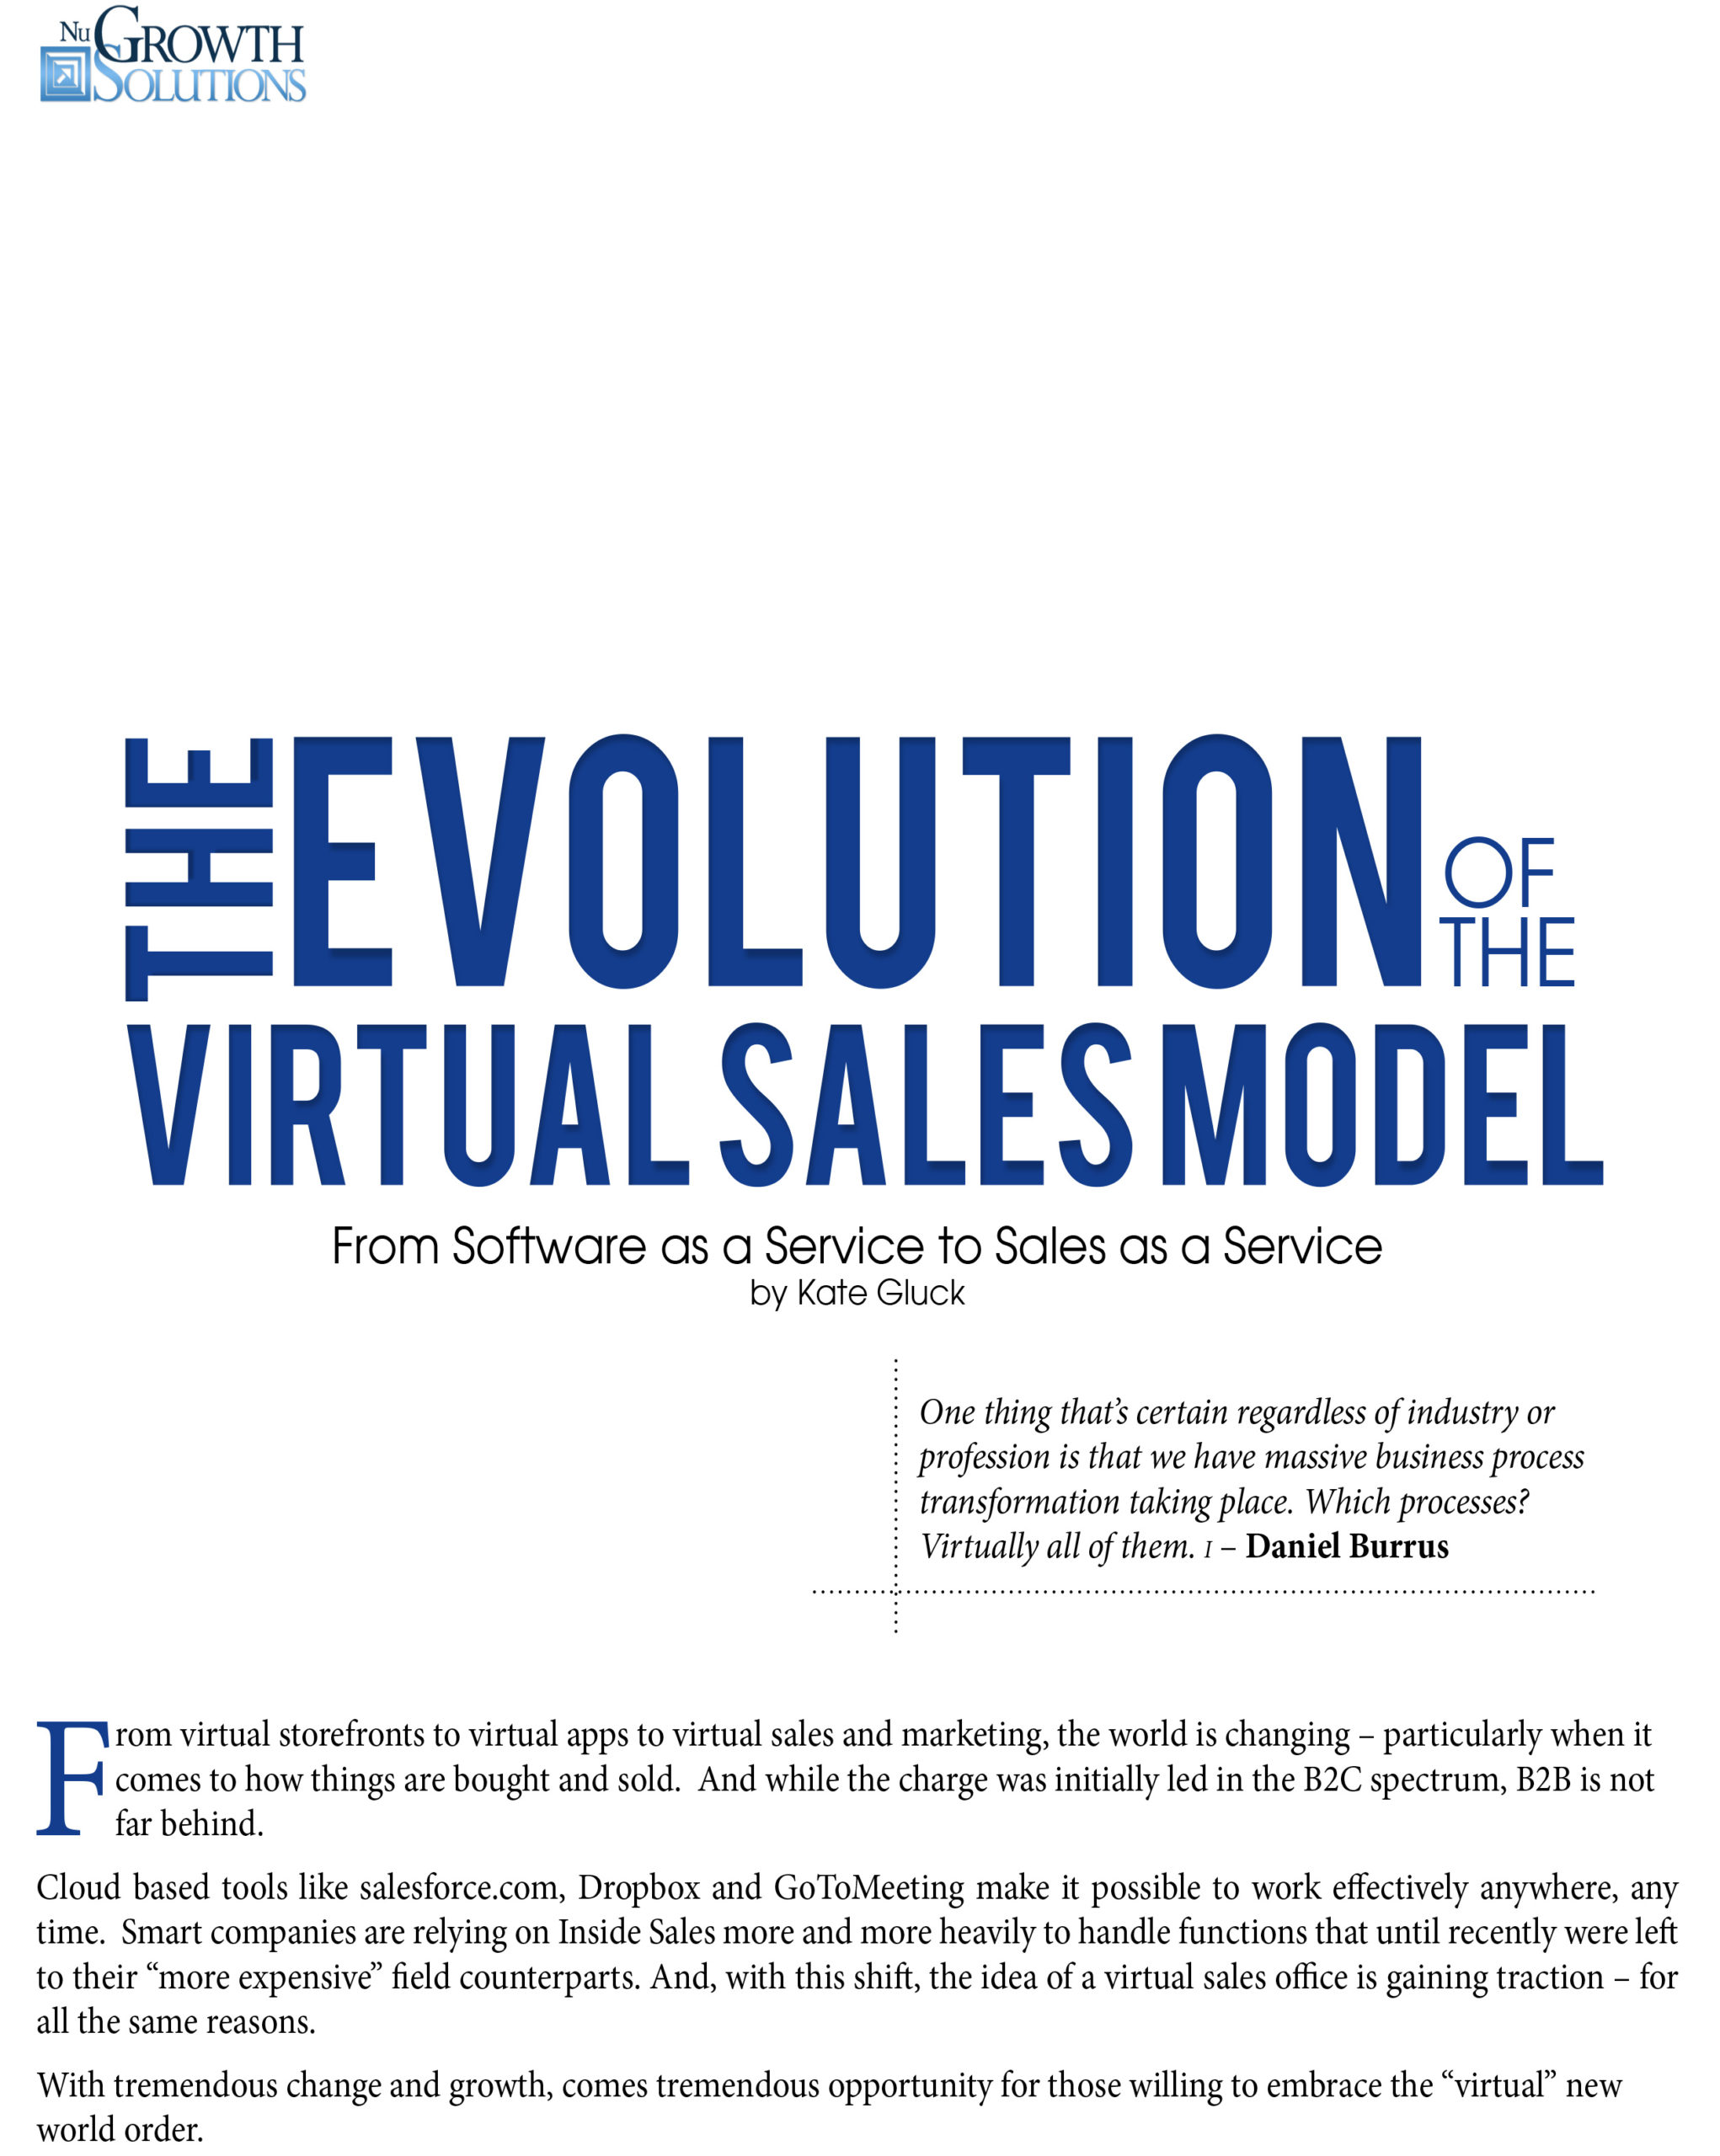 The-Evolution-of-the-Virtual-Sales-Model-1